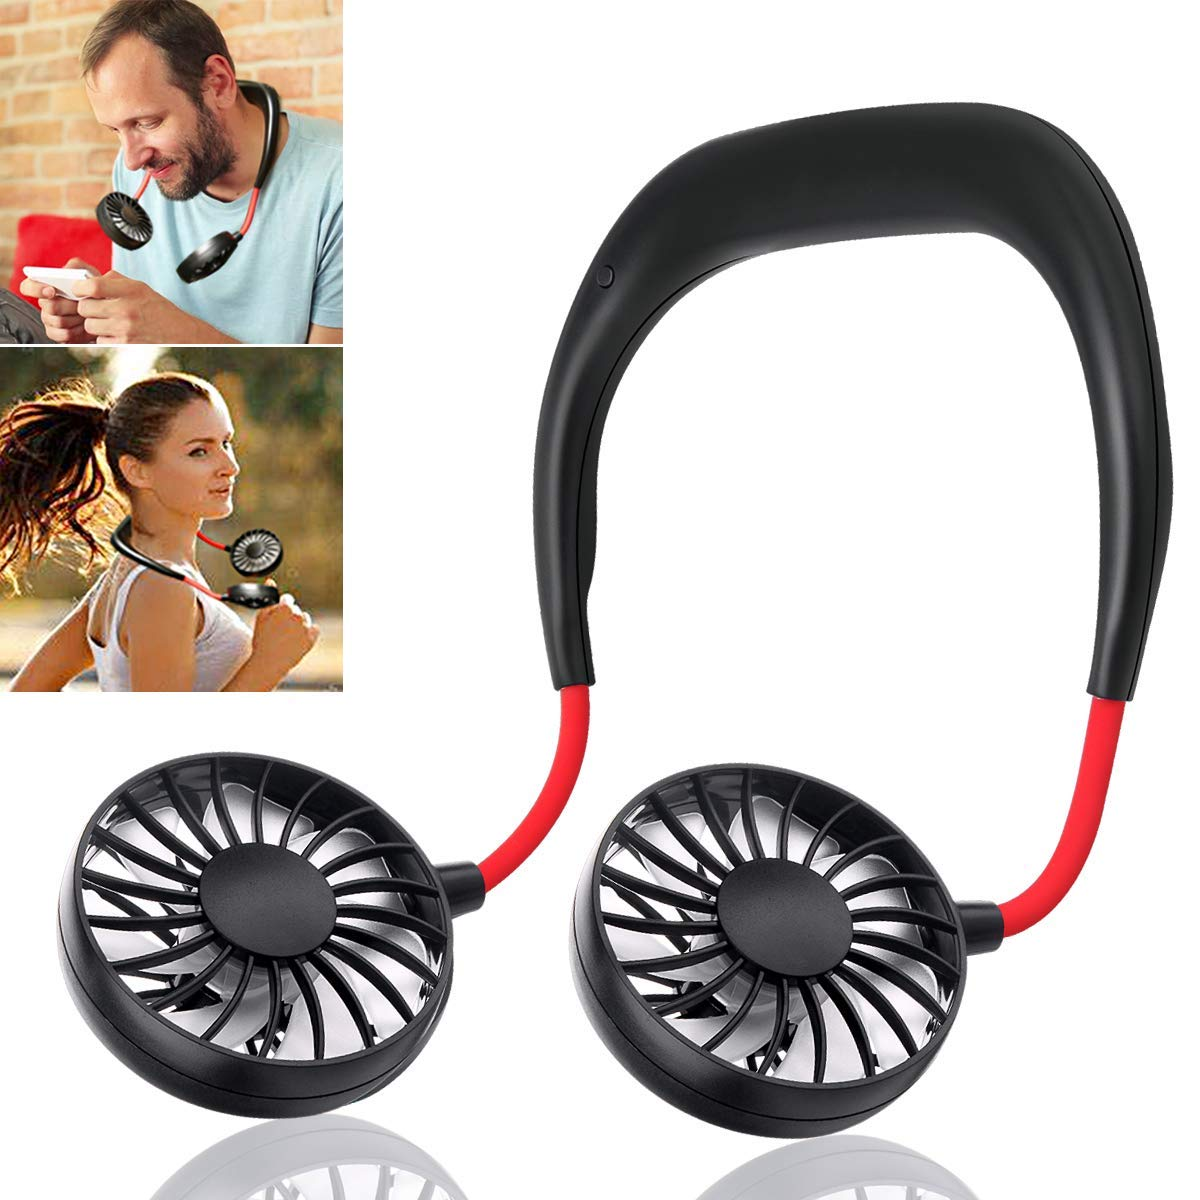 Mini Personal Cooling Fan Neck-Hanging Double Fan USB Rechargeable